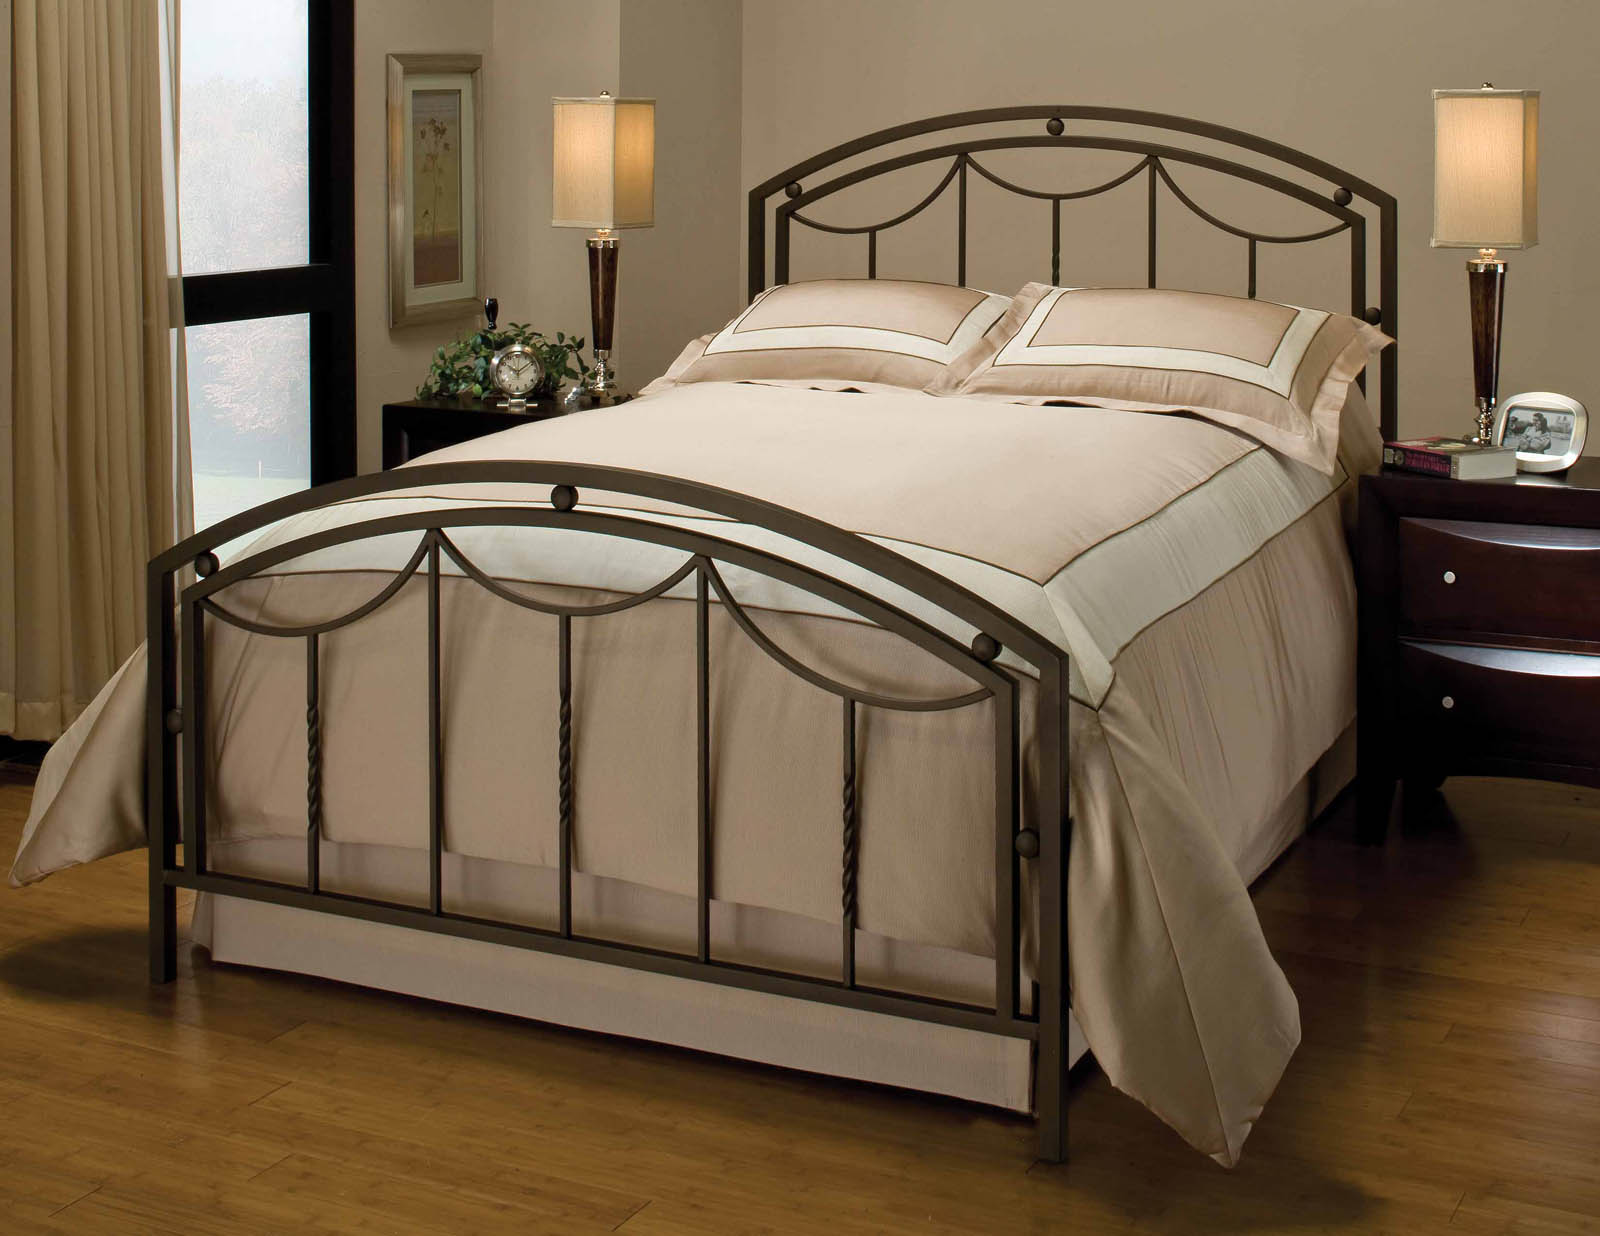 Image of: Full Size Metal Bed Frame Pictures